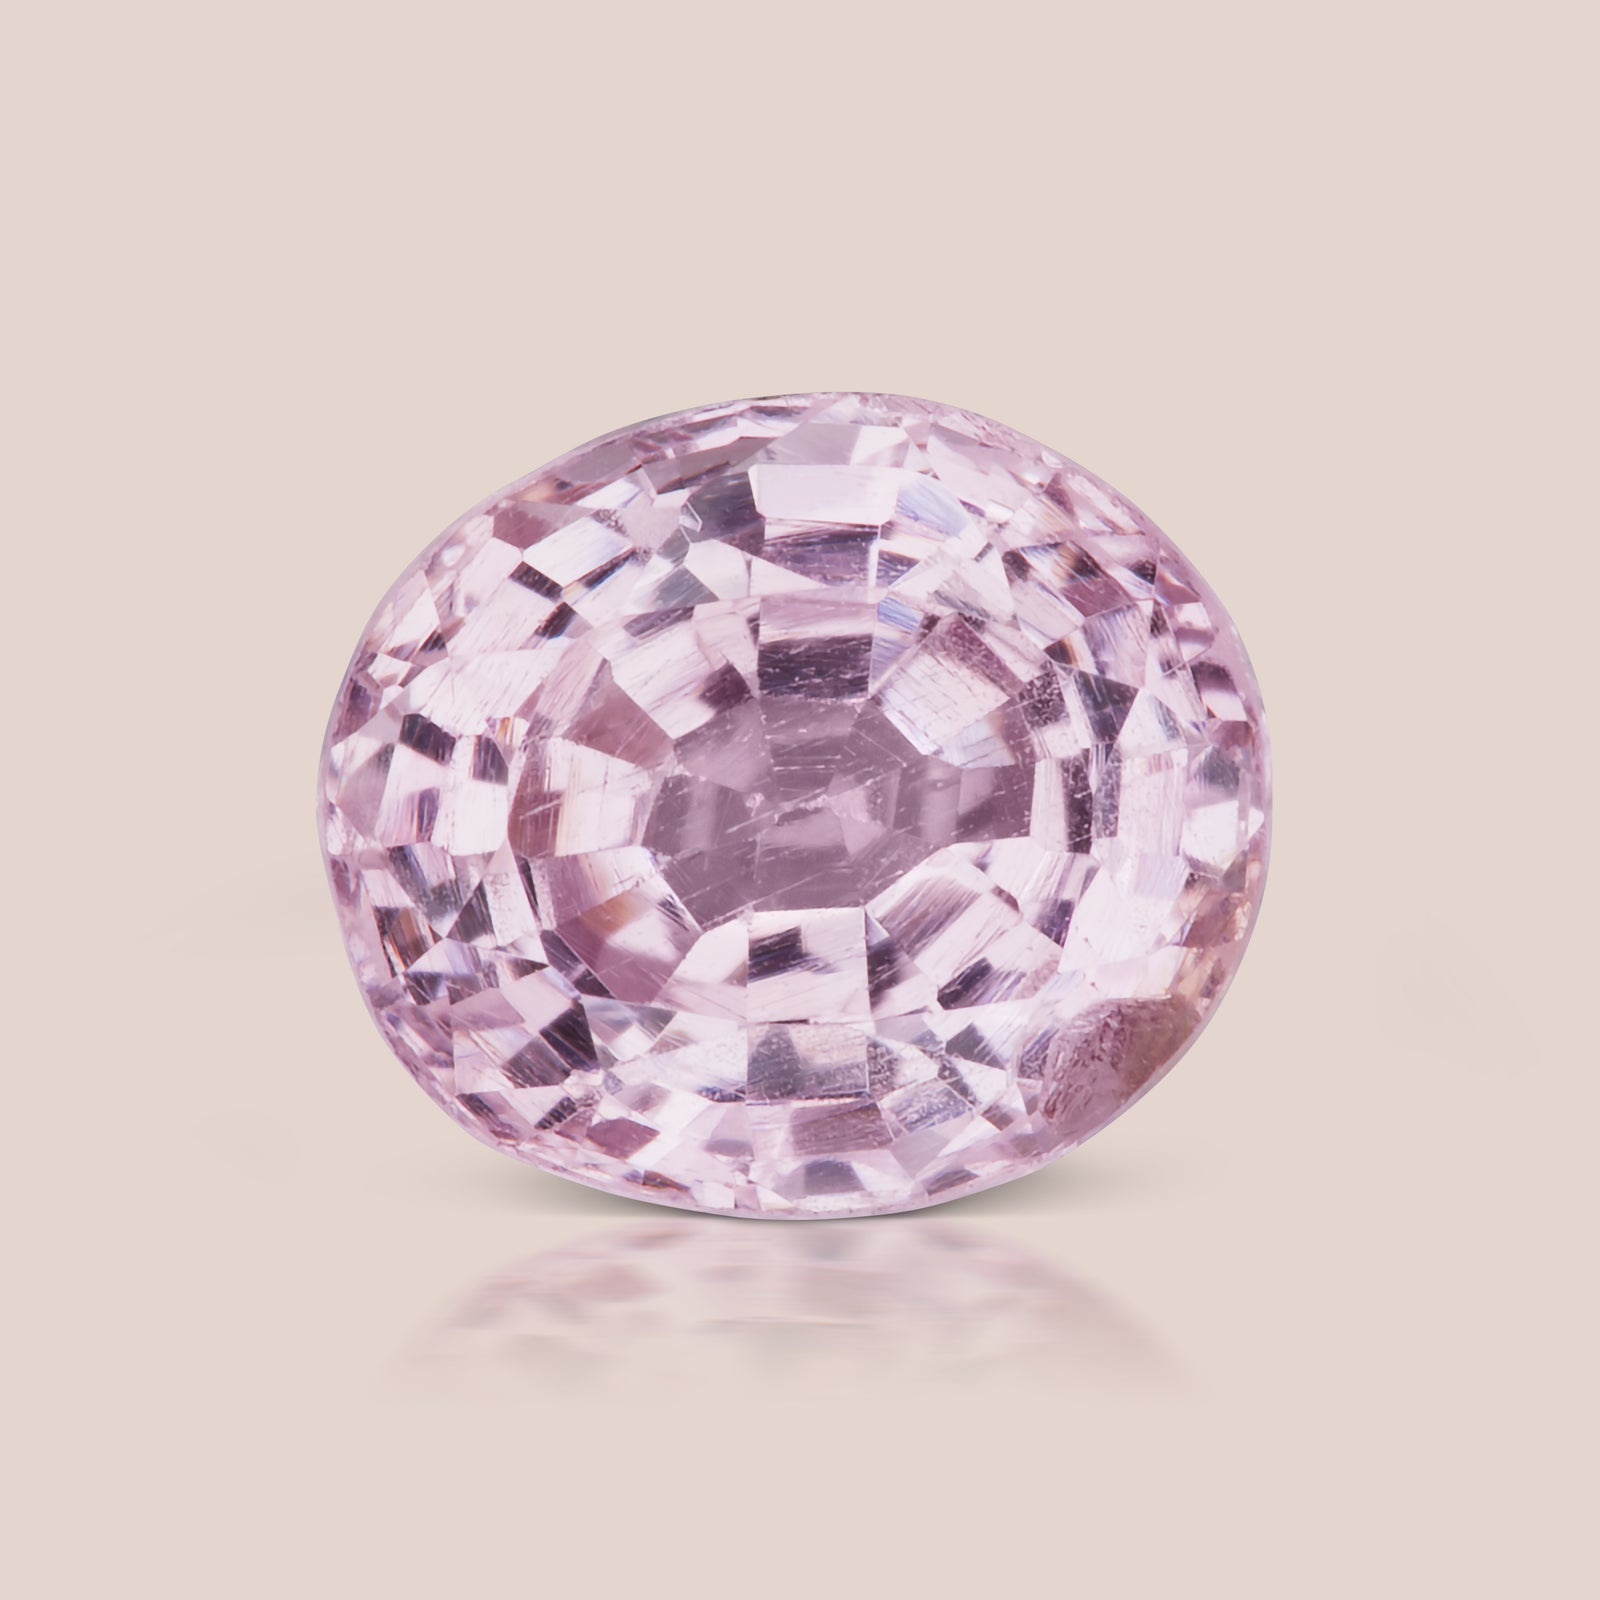 Rare Natural Pink Burmese Spinel